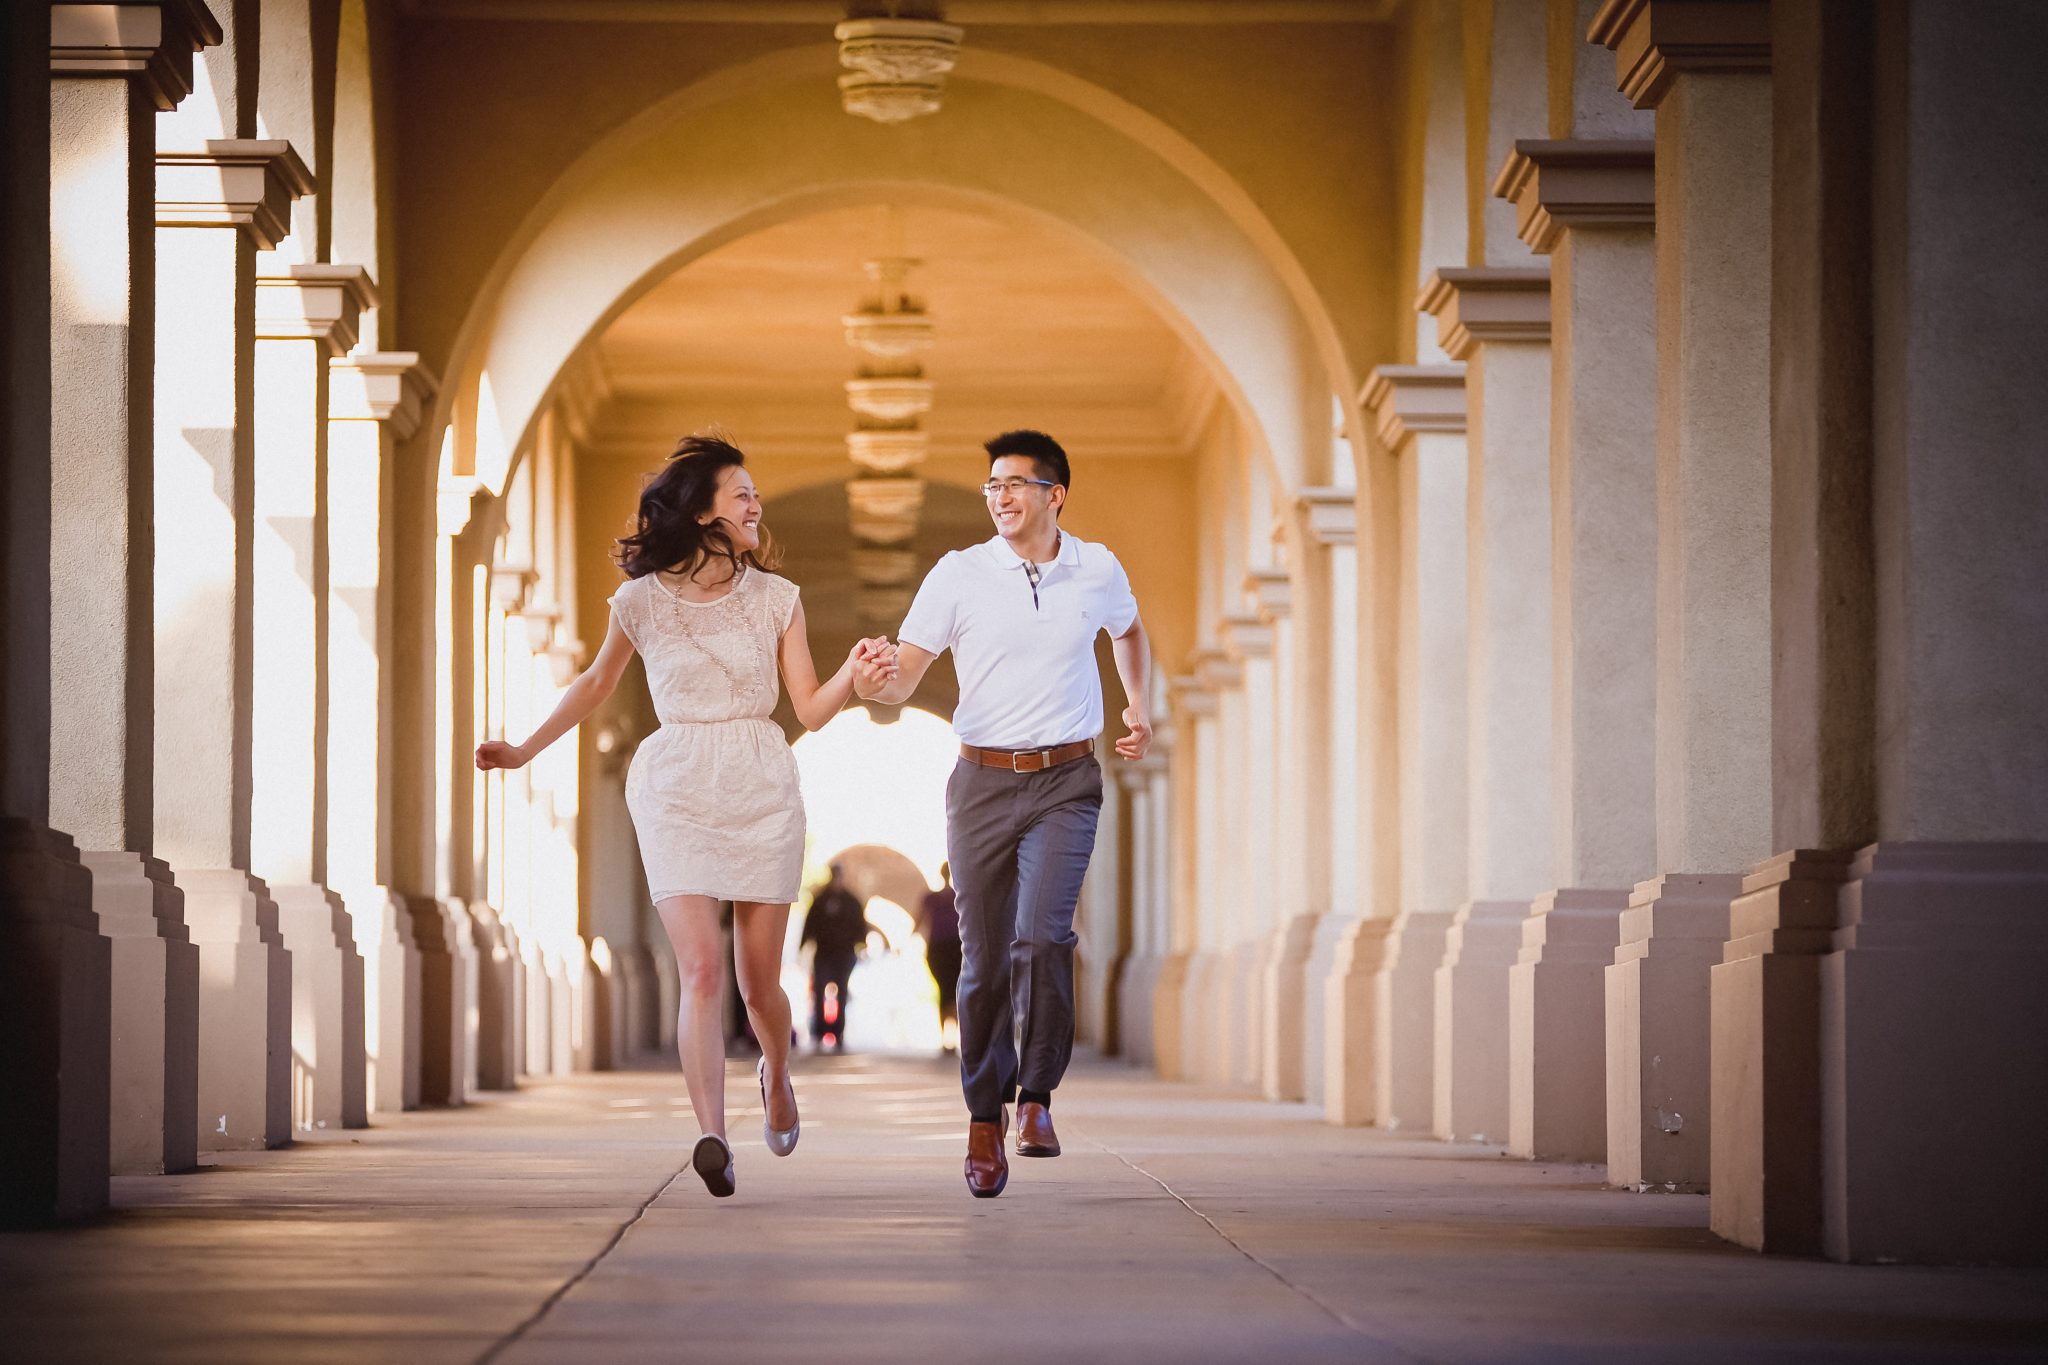 Classic engagement picture outfits at Balboa Park